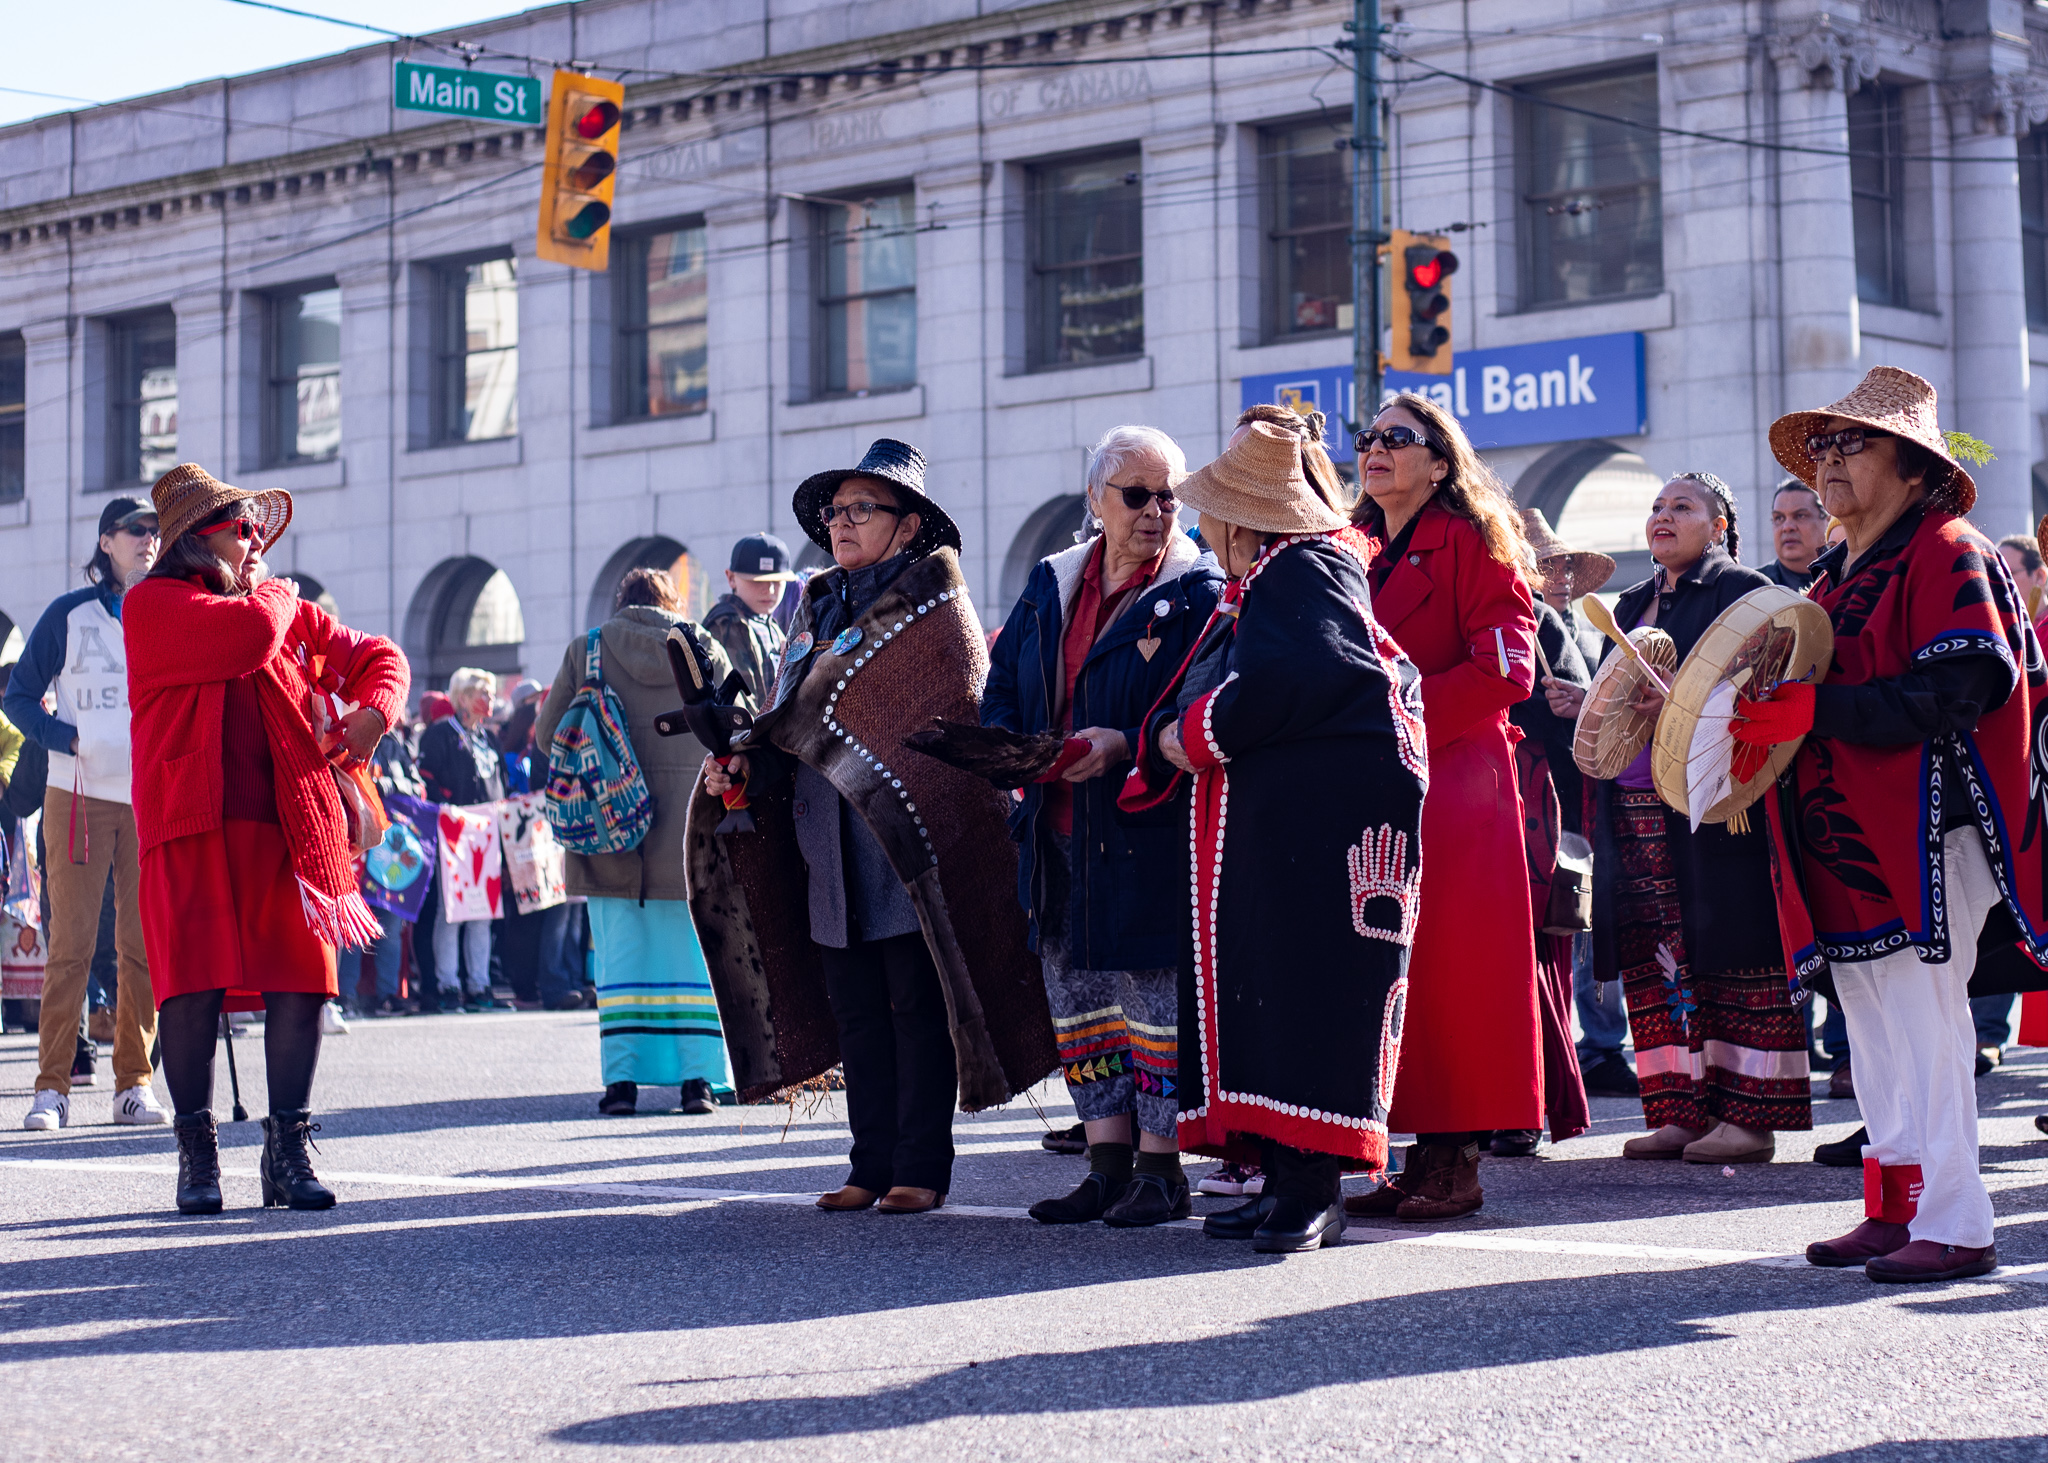 This was the first march that took place since the release of the 'National Inquiry Into Missing and Murdered Indigenous Women and Girls.'